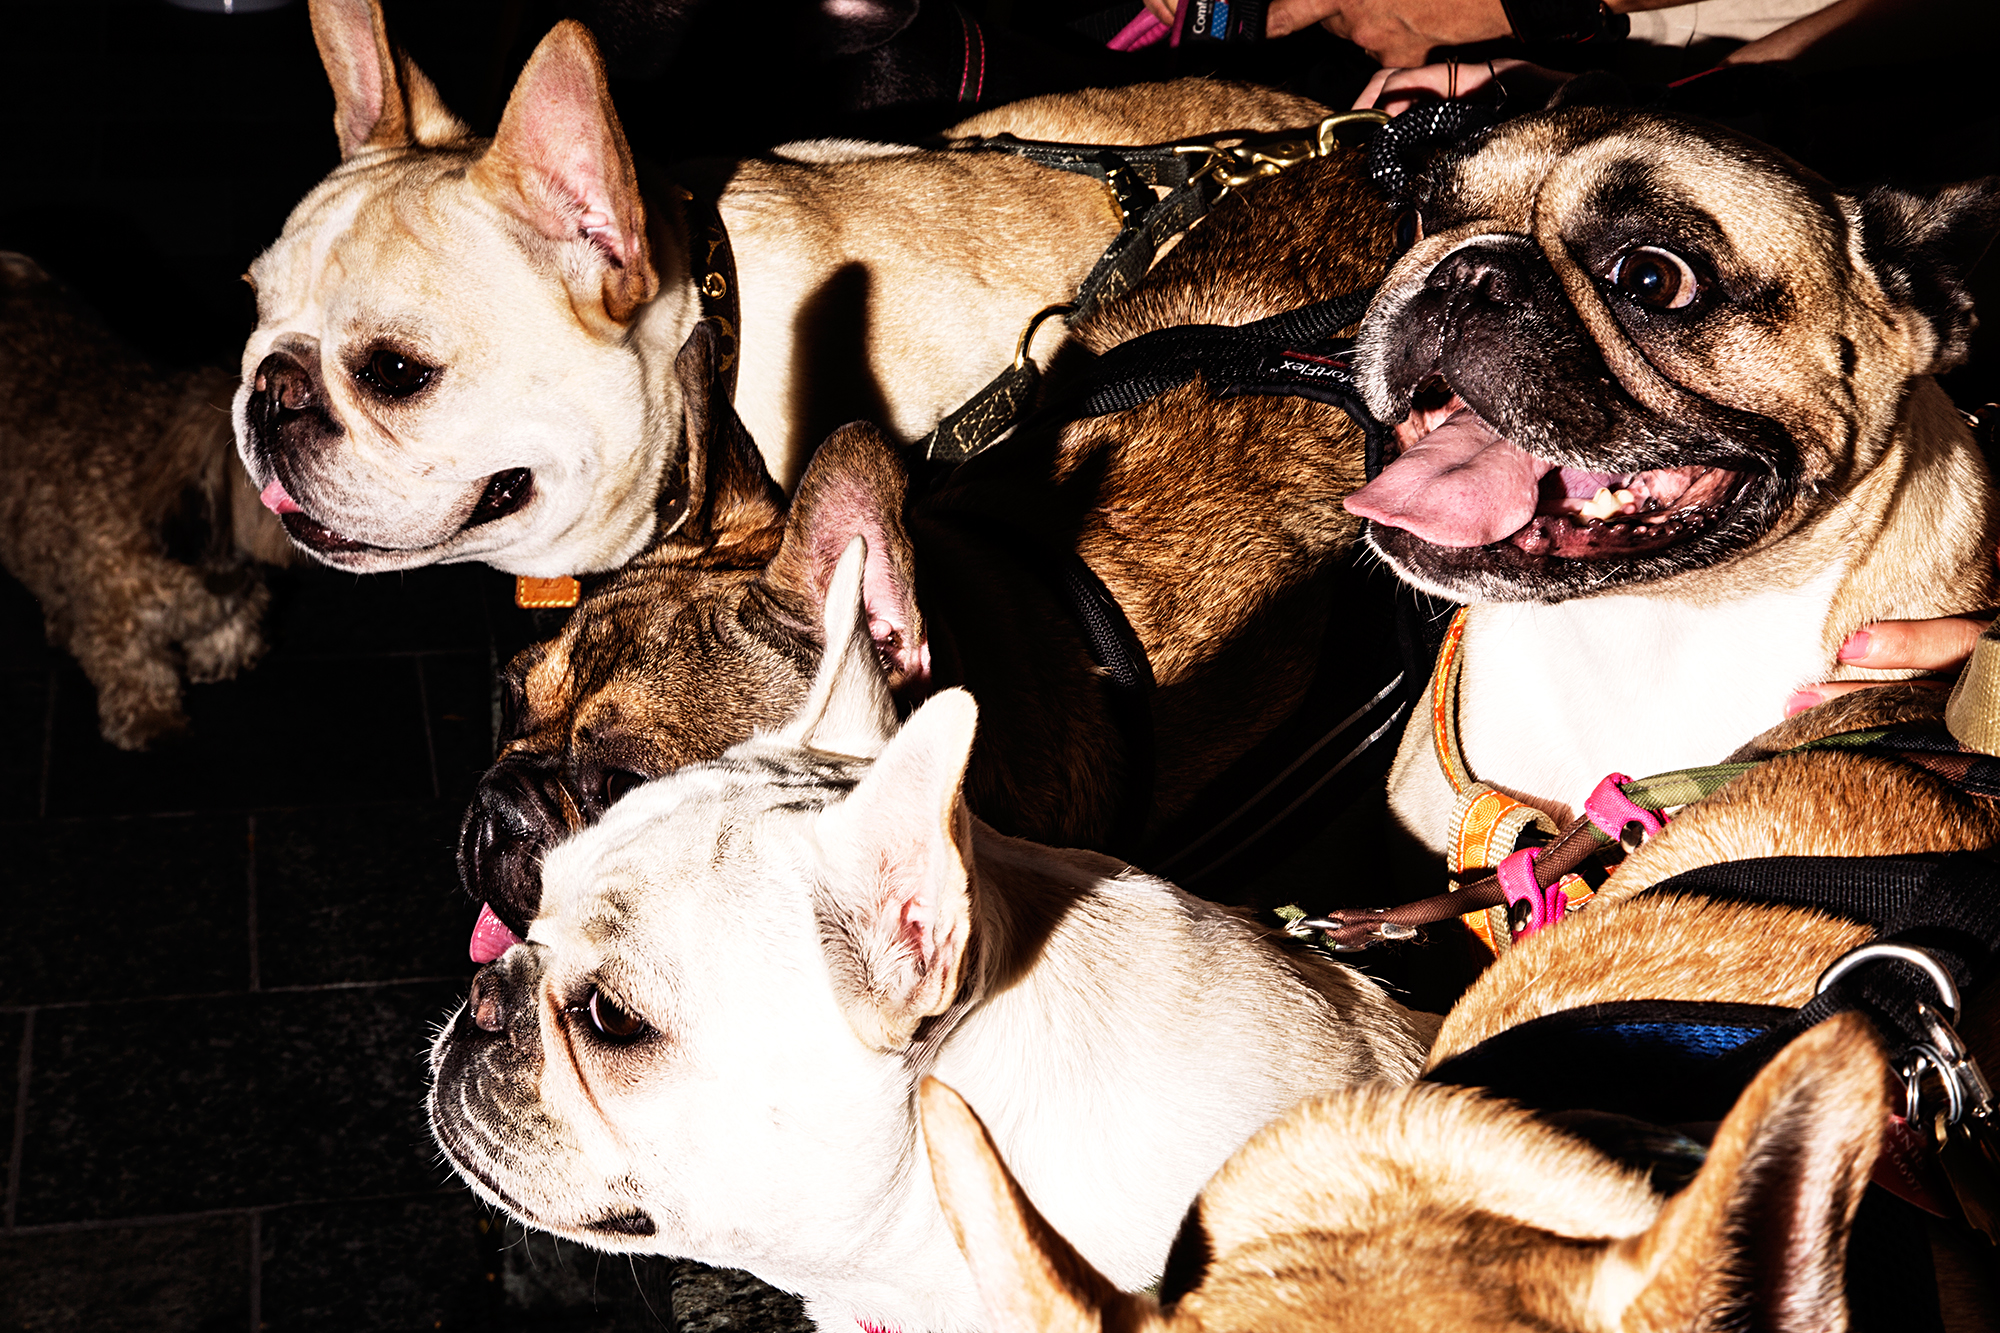 @thedailywalter, @lolabarksdale, @suggsthefrenchie and @tuppee_nyc_frenchie